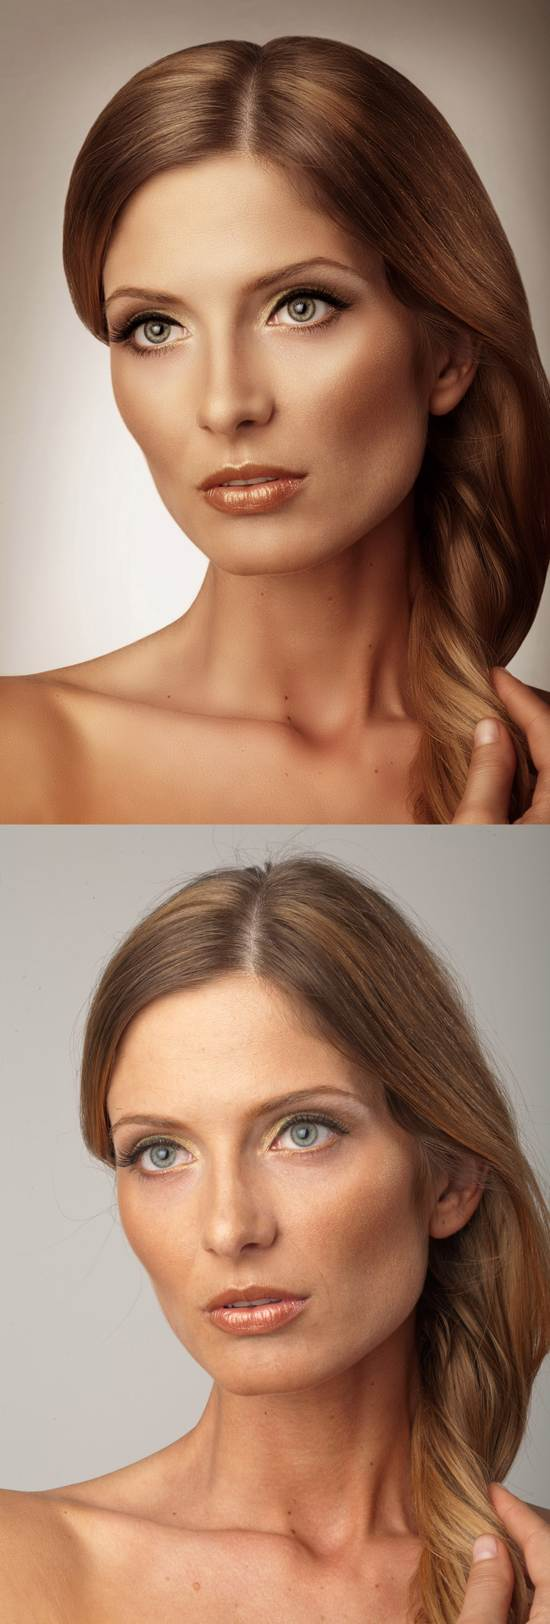 after and before photo retouching